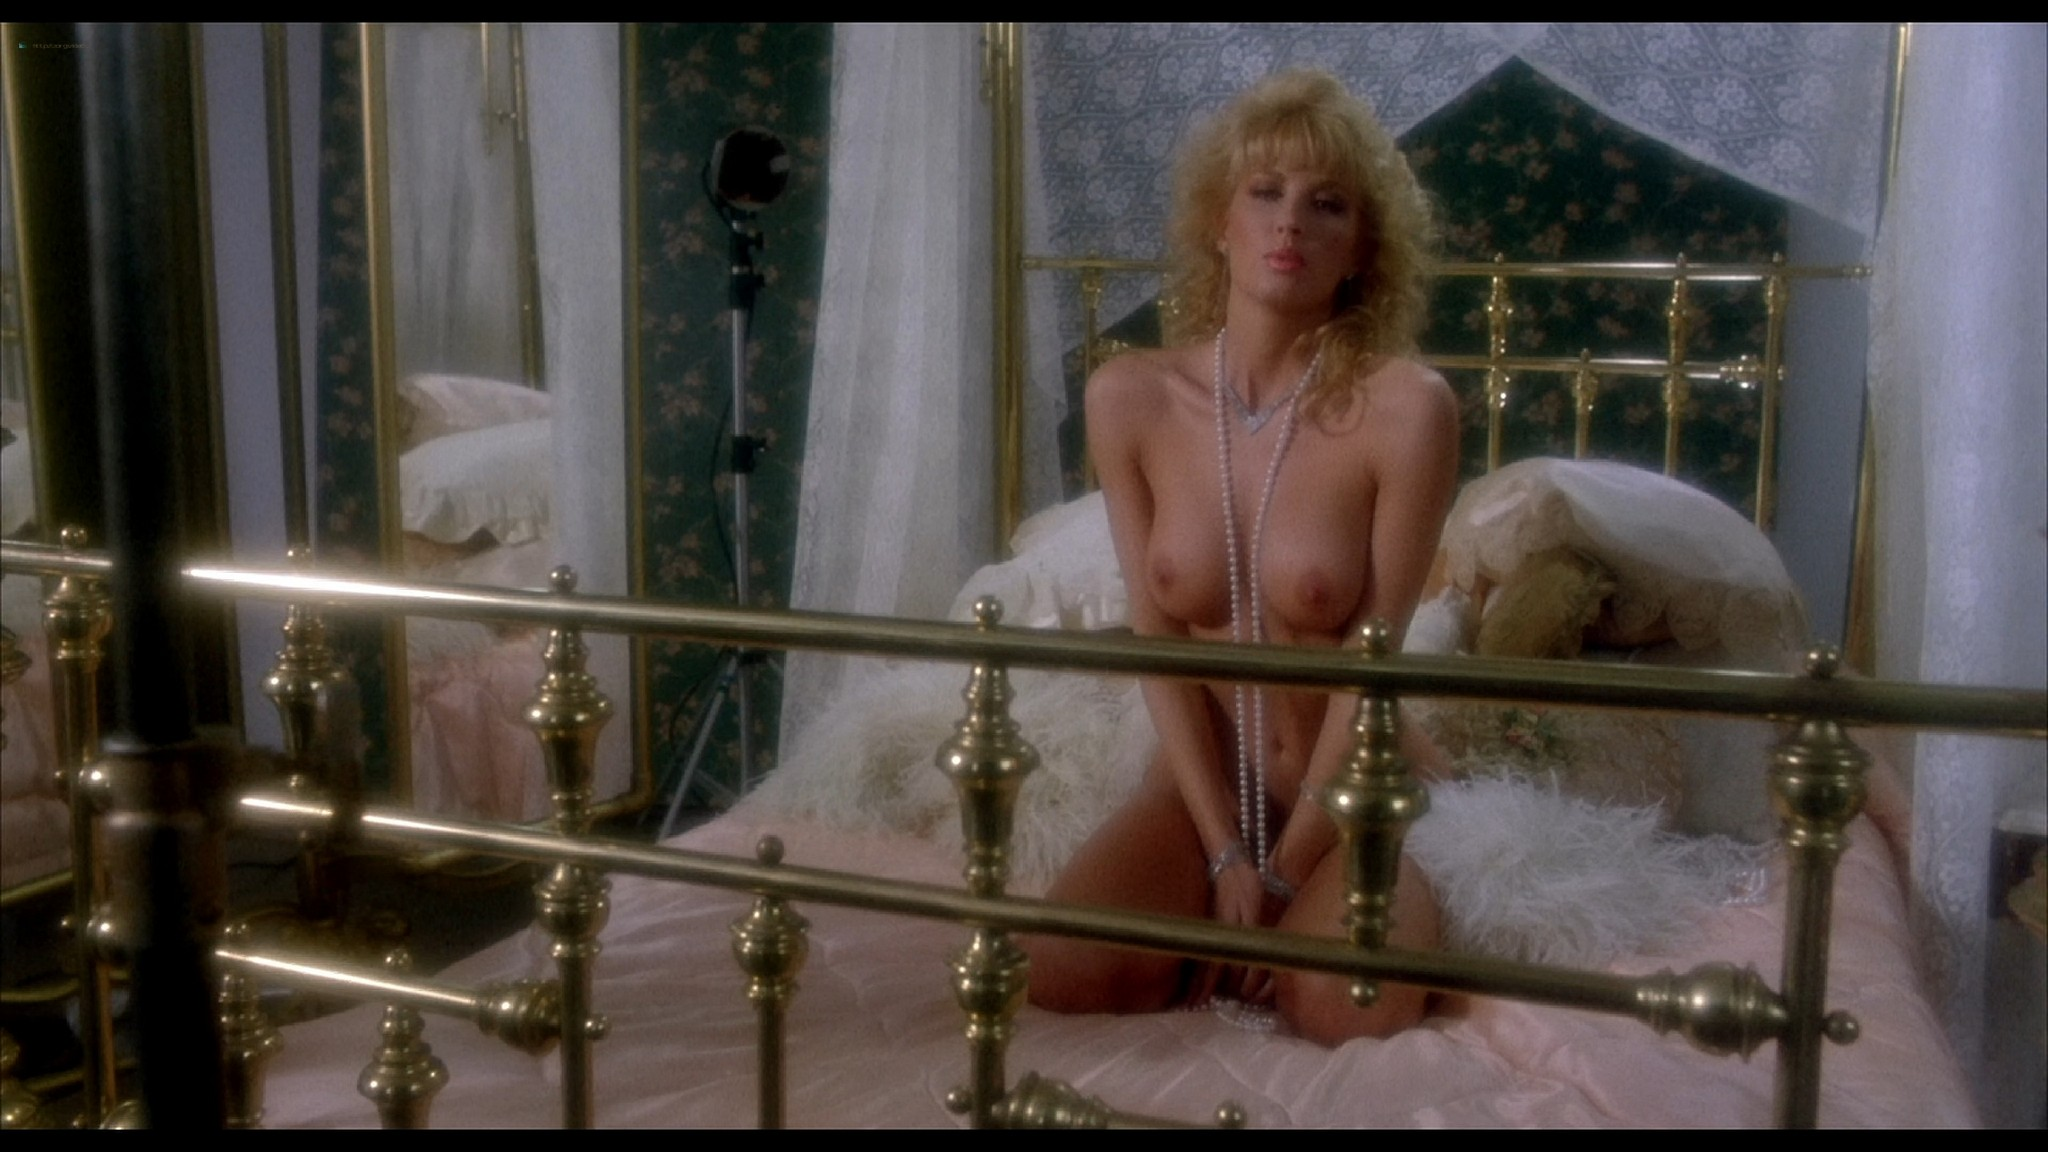 Monique Gabrielle nude full frontal Corinne Wahl and other nude and sexy Amazon Women on The Moon 1987 HD 1080p BluRay REMUX 002